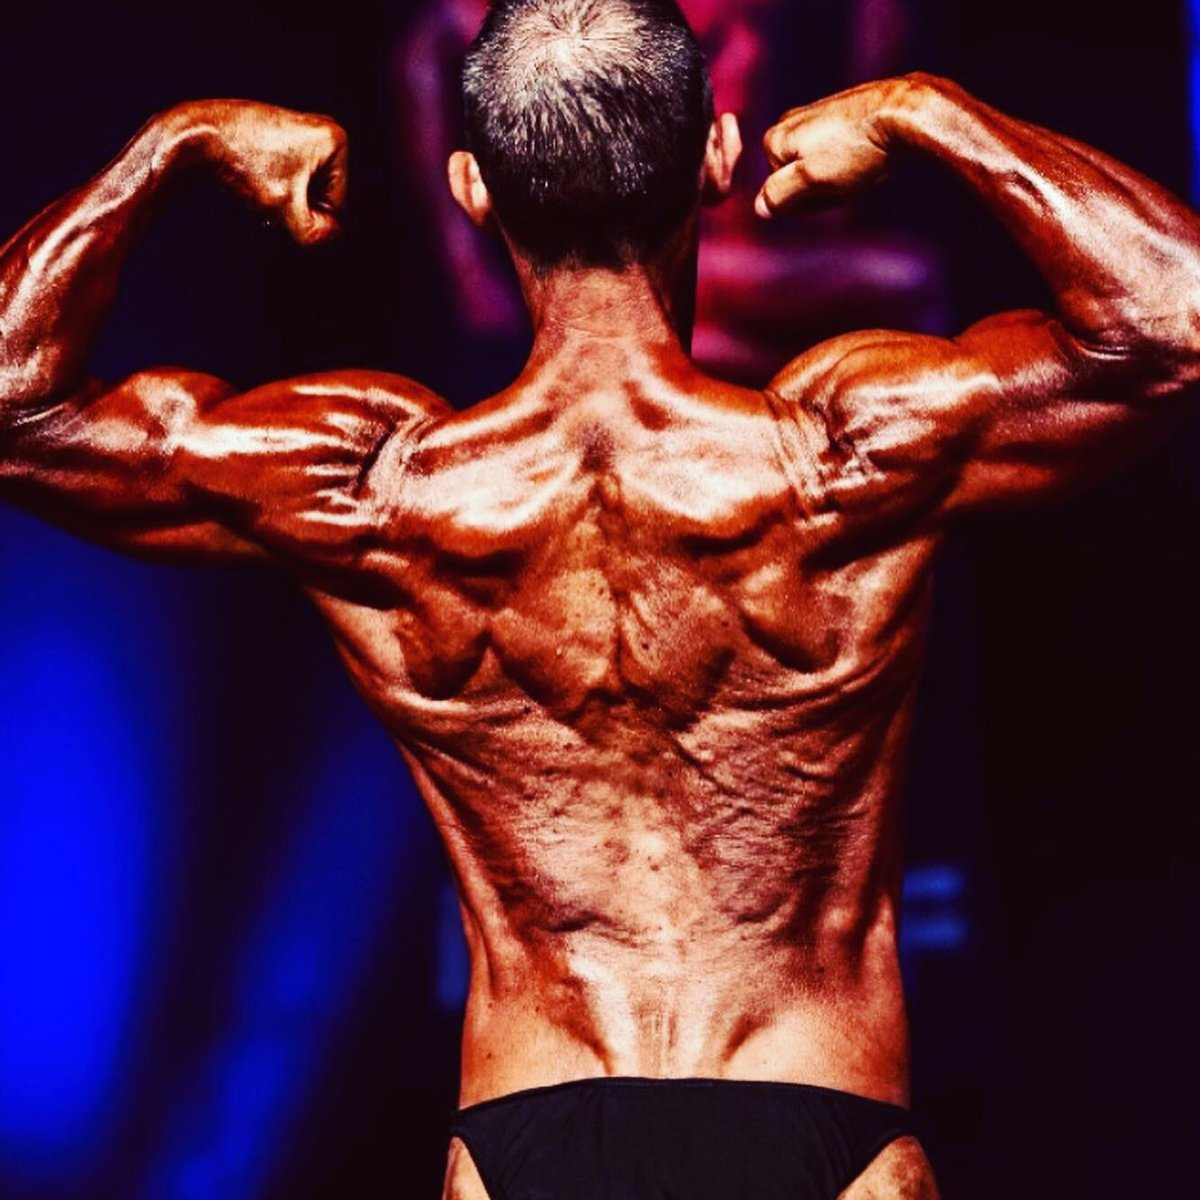 image of image: 28 of 32Tim poses at the 2019 BNBF Central Contest on his way to collect 3<sup>rd</sup> spot in the Over 50s category.